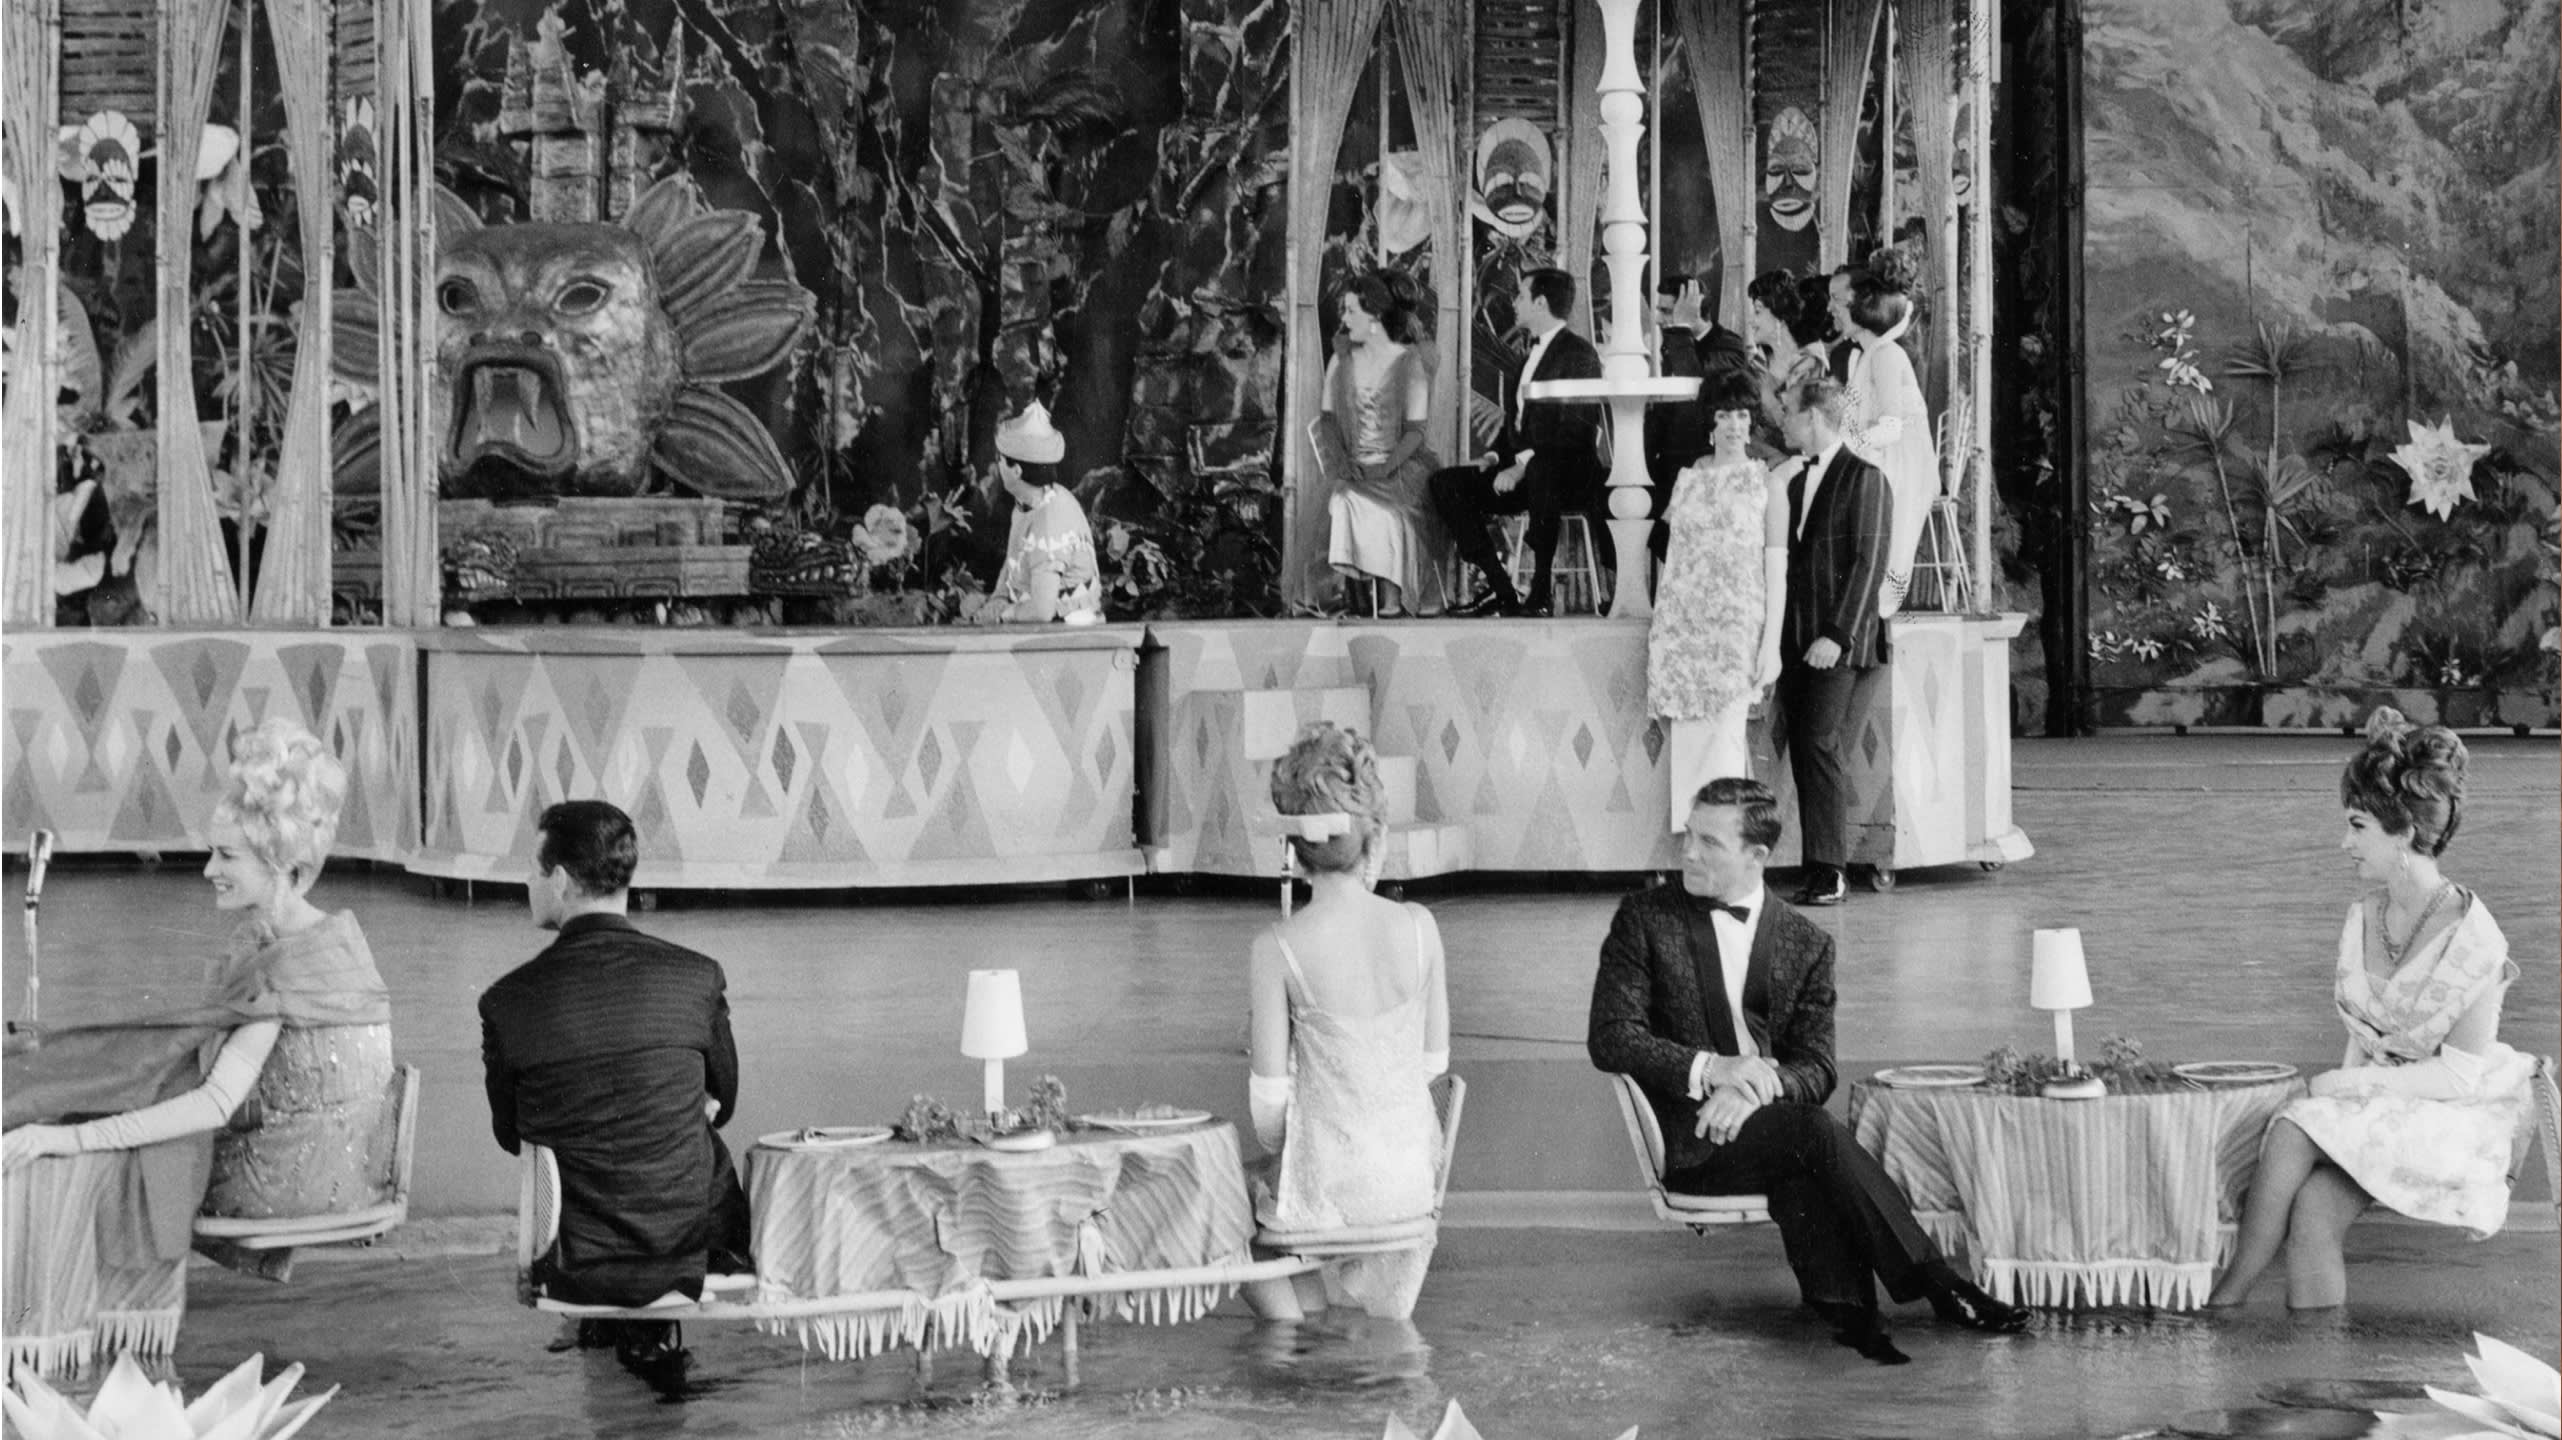 Brioni designs shown at the Waldorf-Astoria during the World's Fair in New York City, 1964